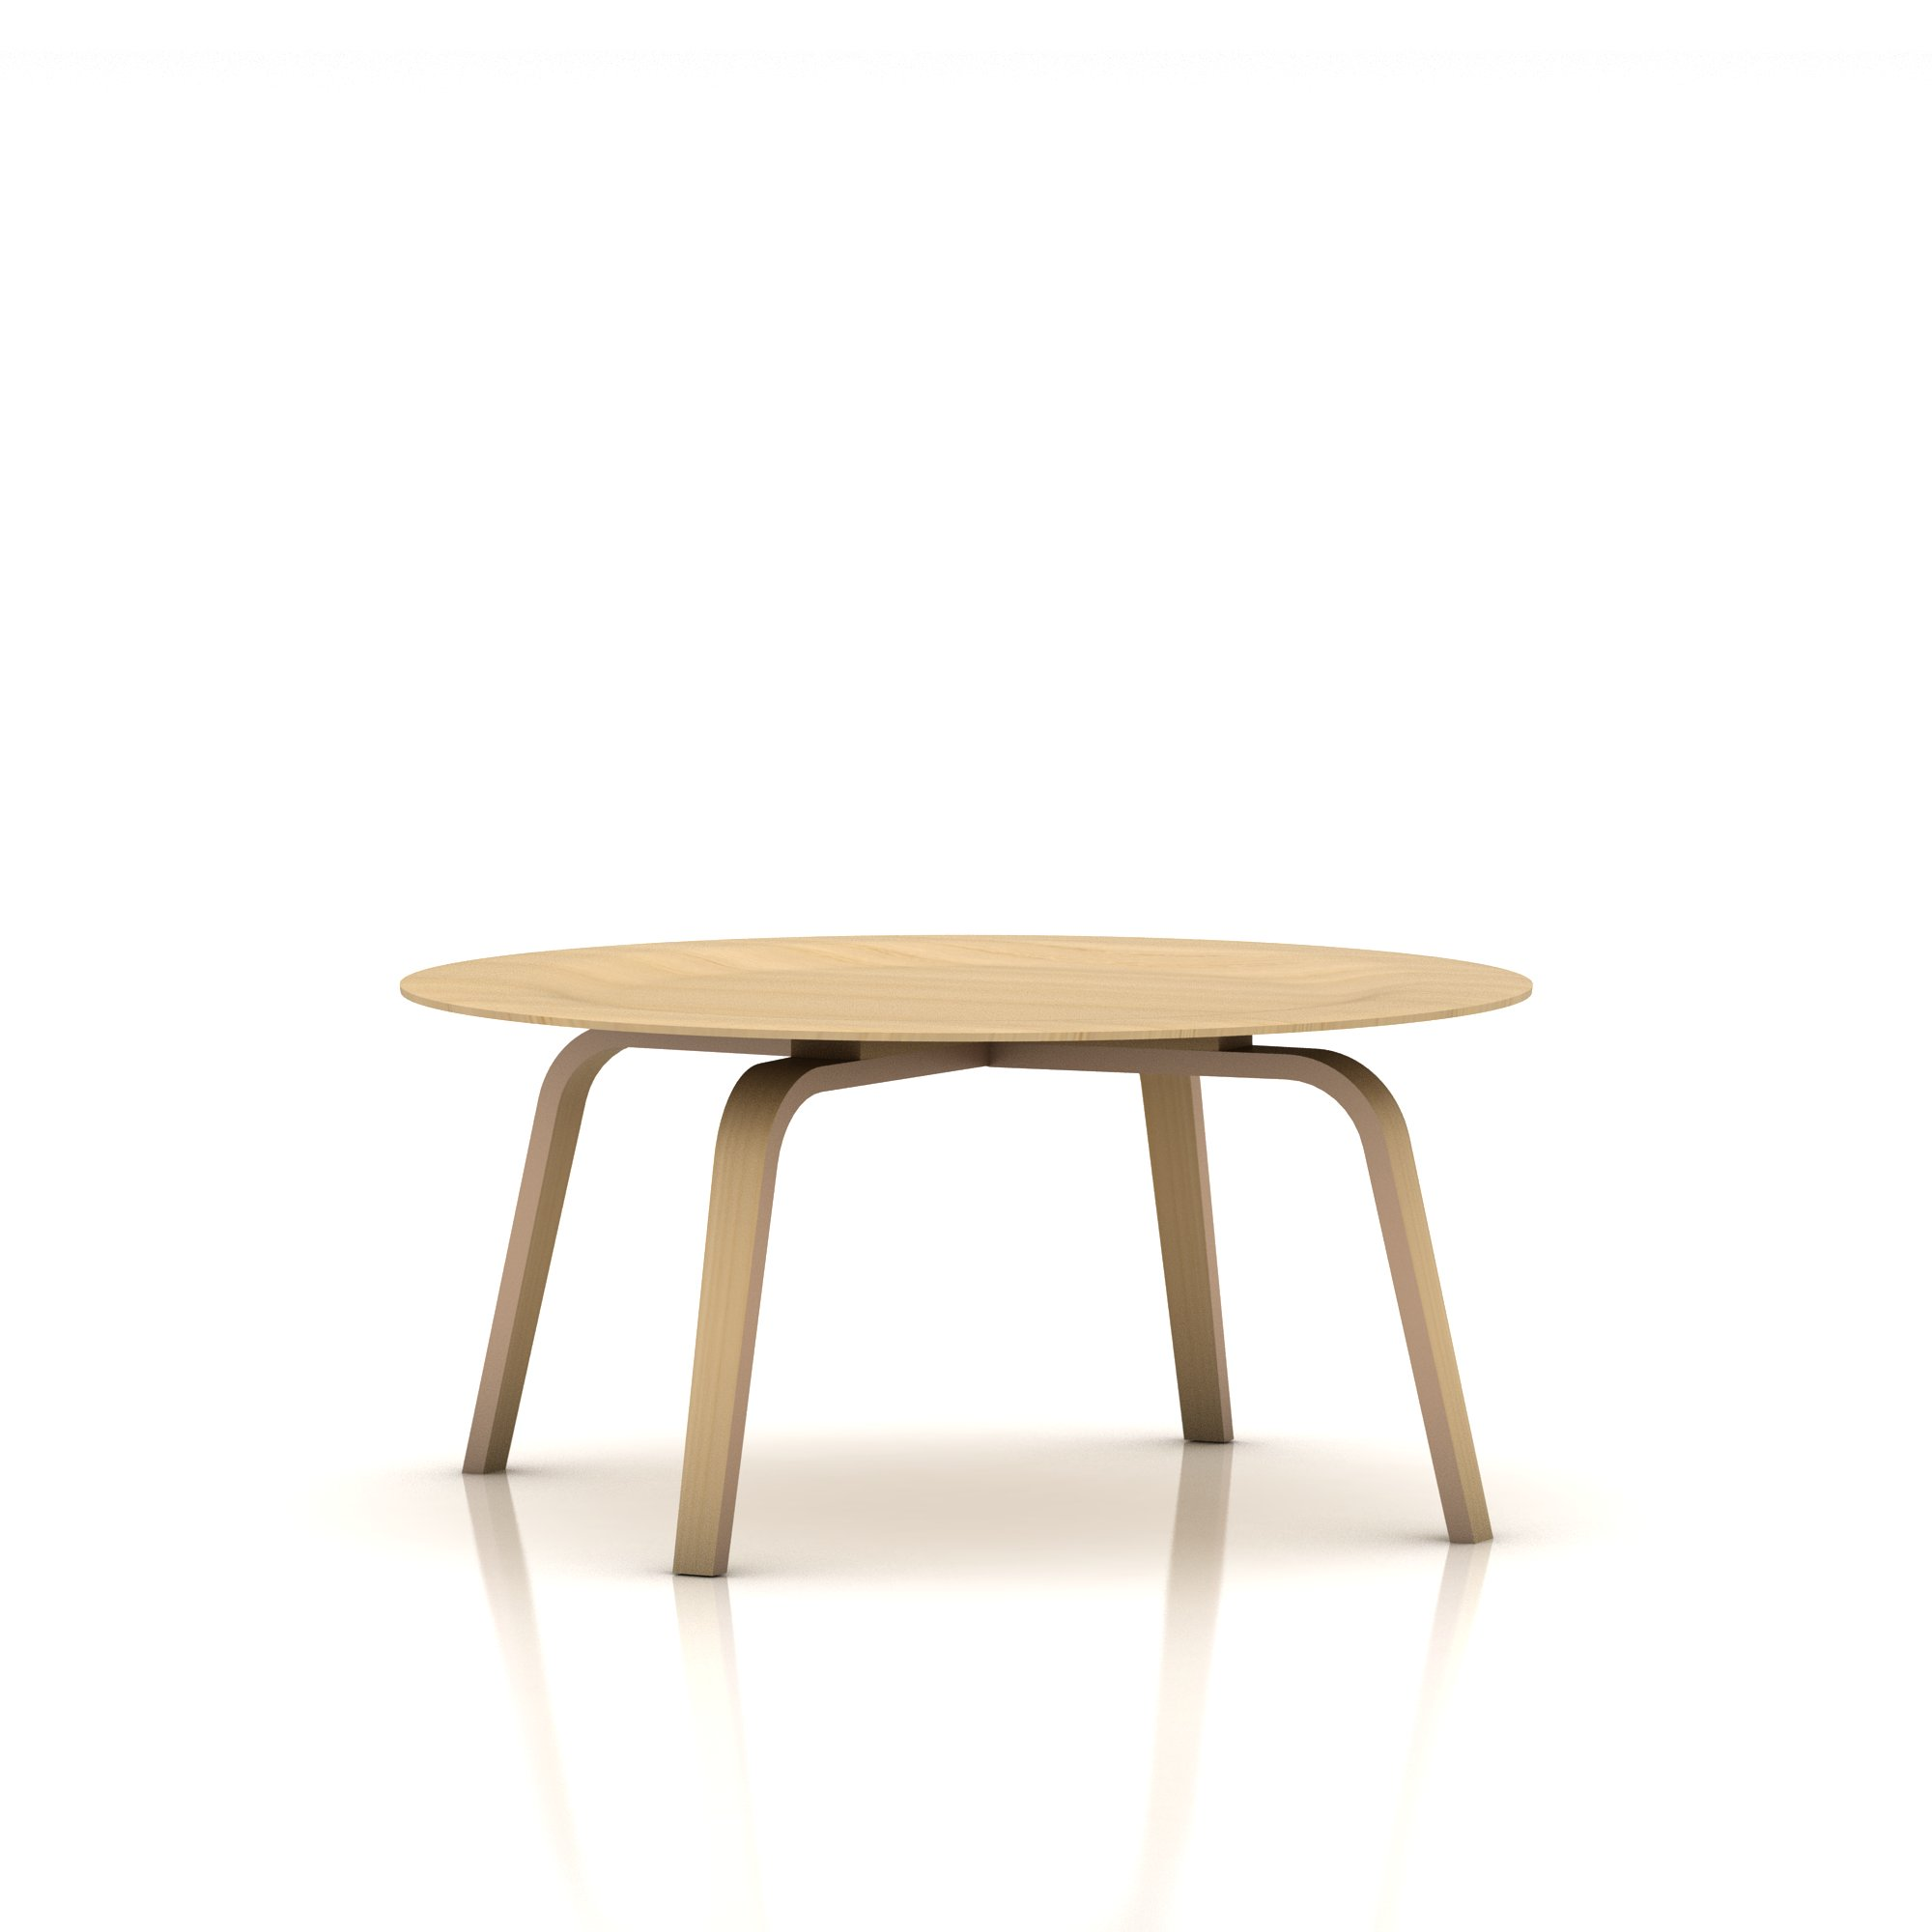 Eames Molded Plywood Coffee Table Wood Base - Item2